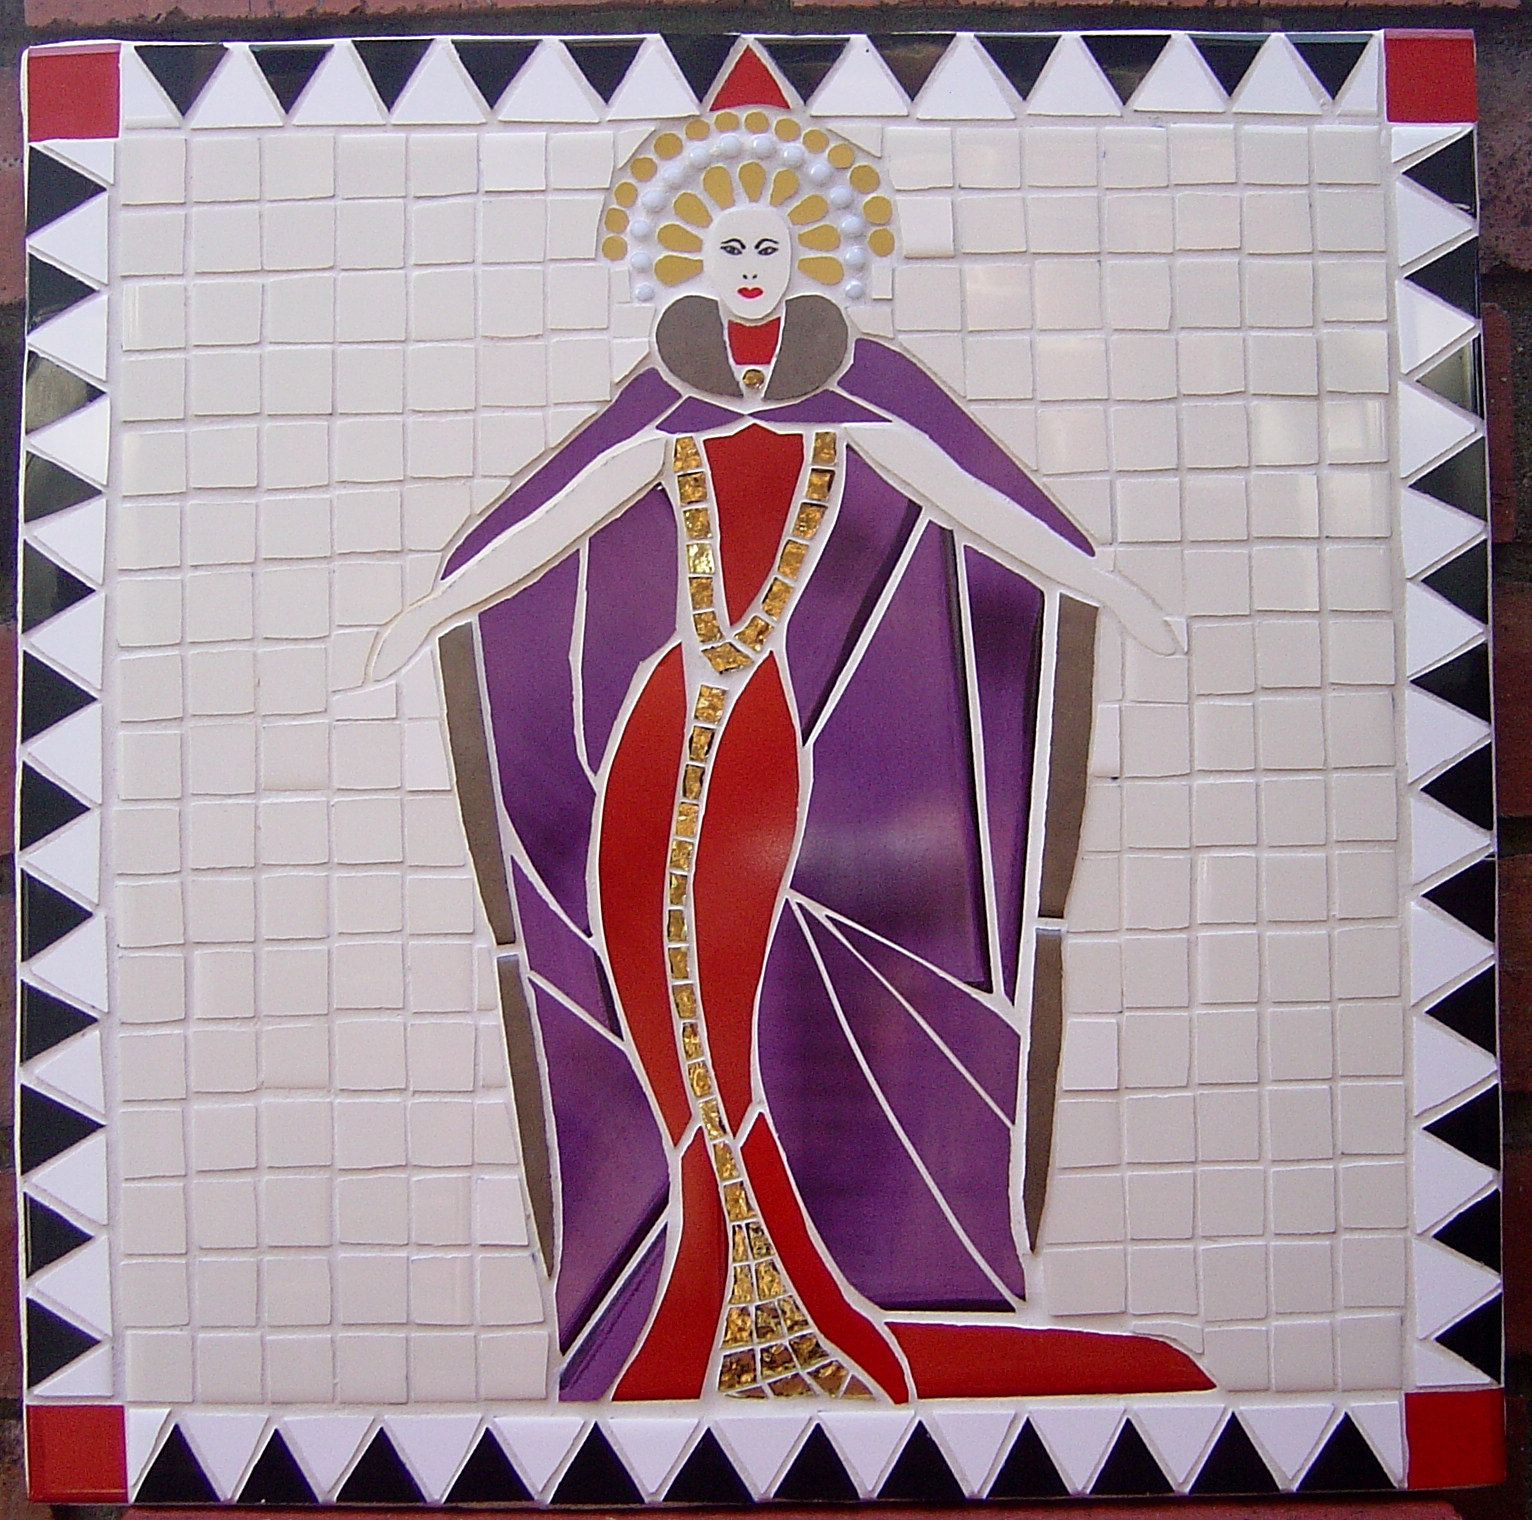 A square ceramic mosaic featuring a queenly female figure in red and purple robes against a cream background.